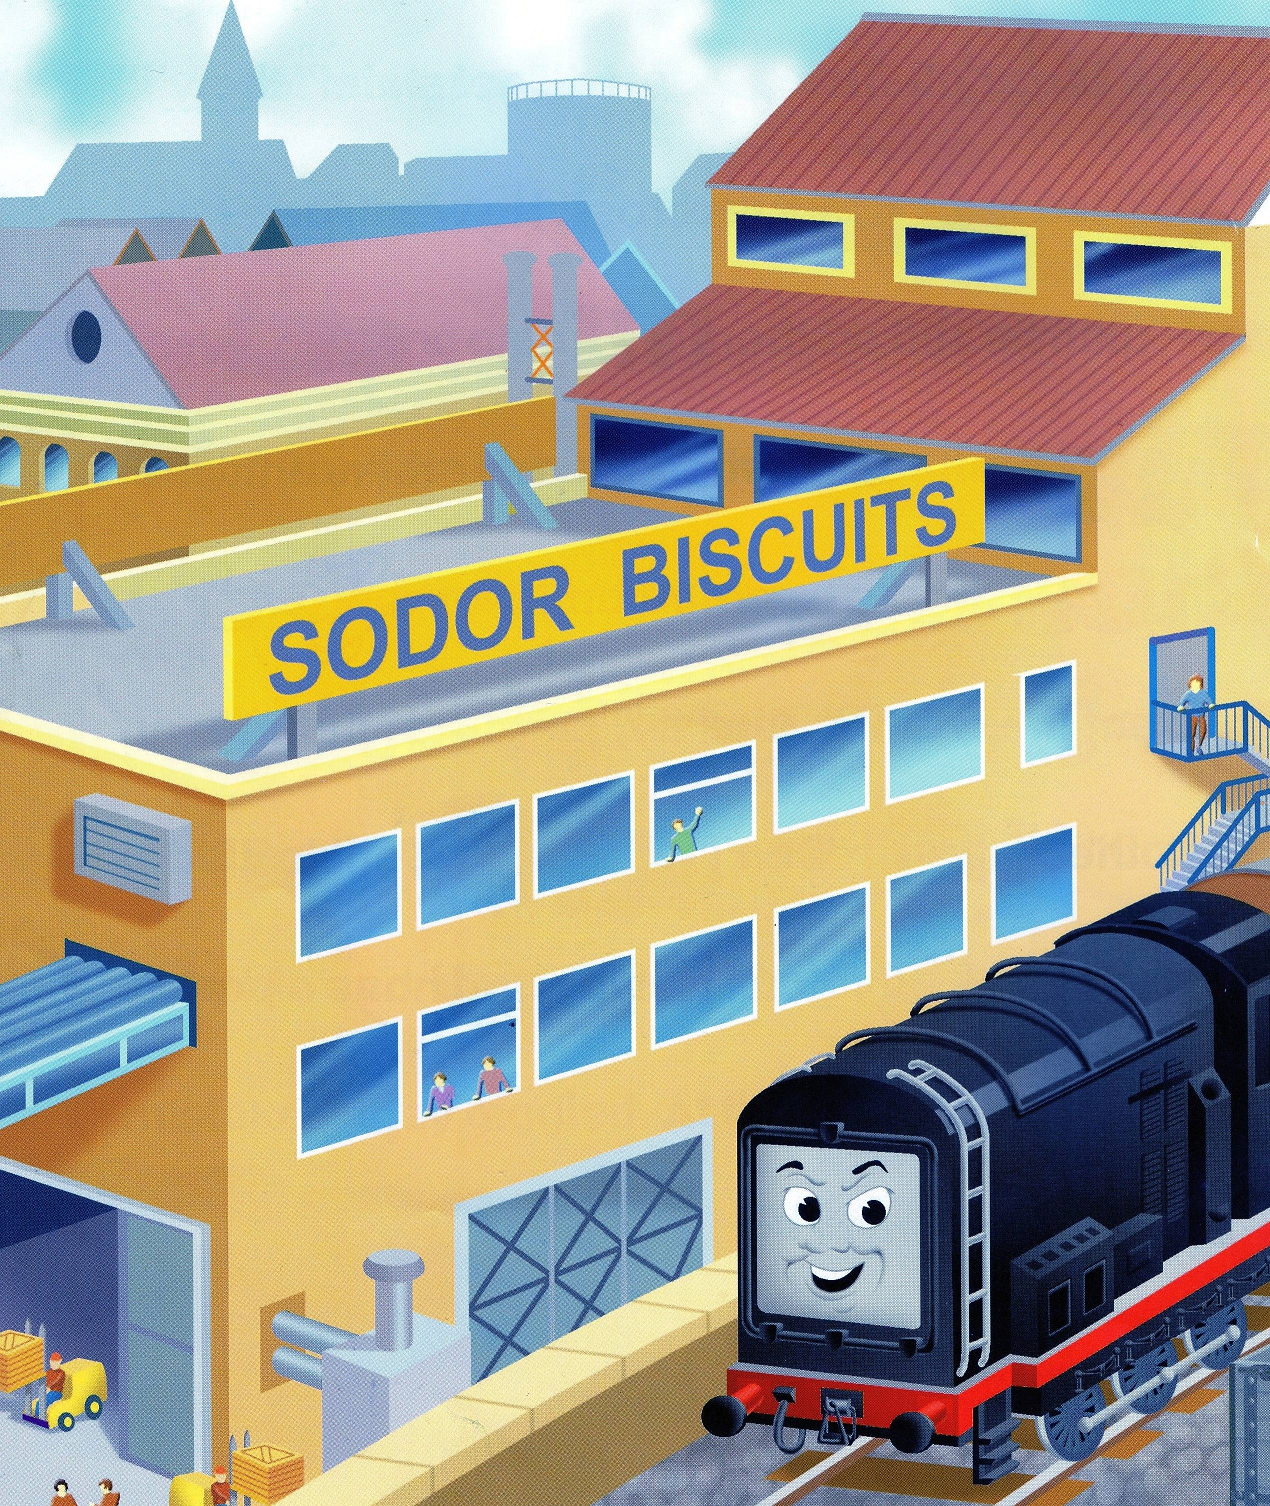 Sodor Biscuits